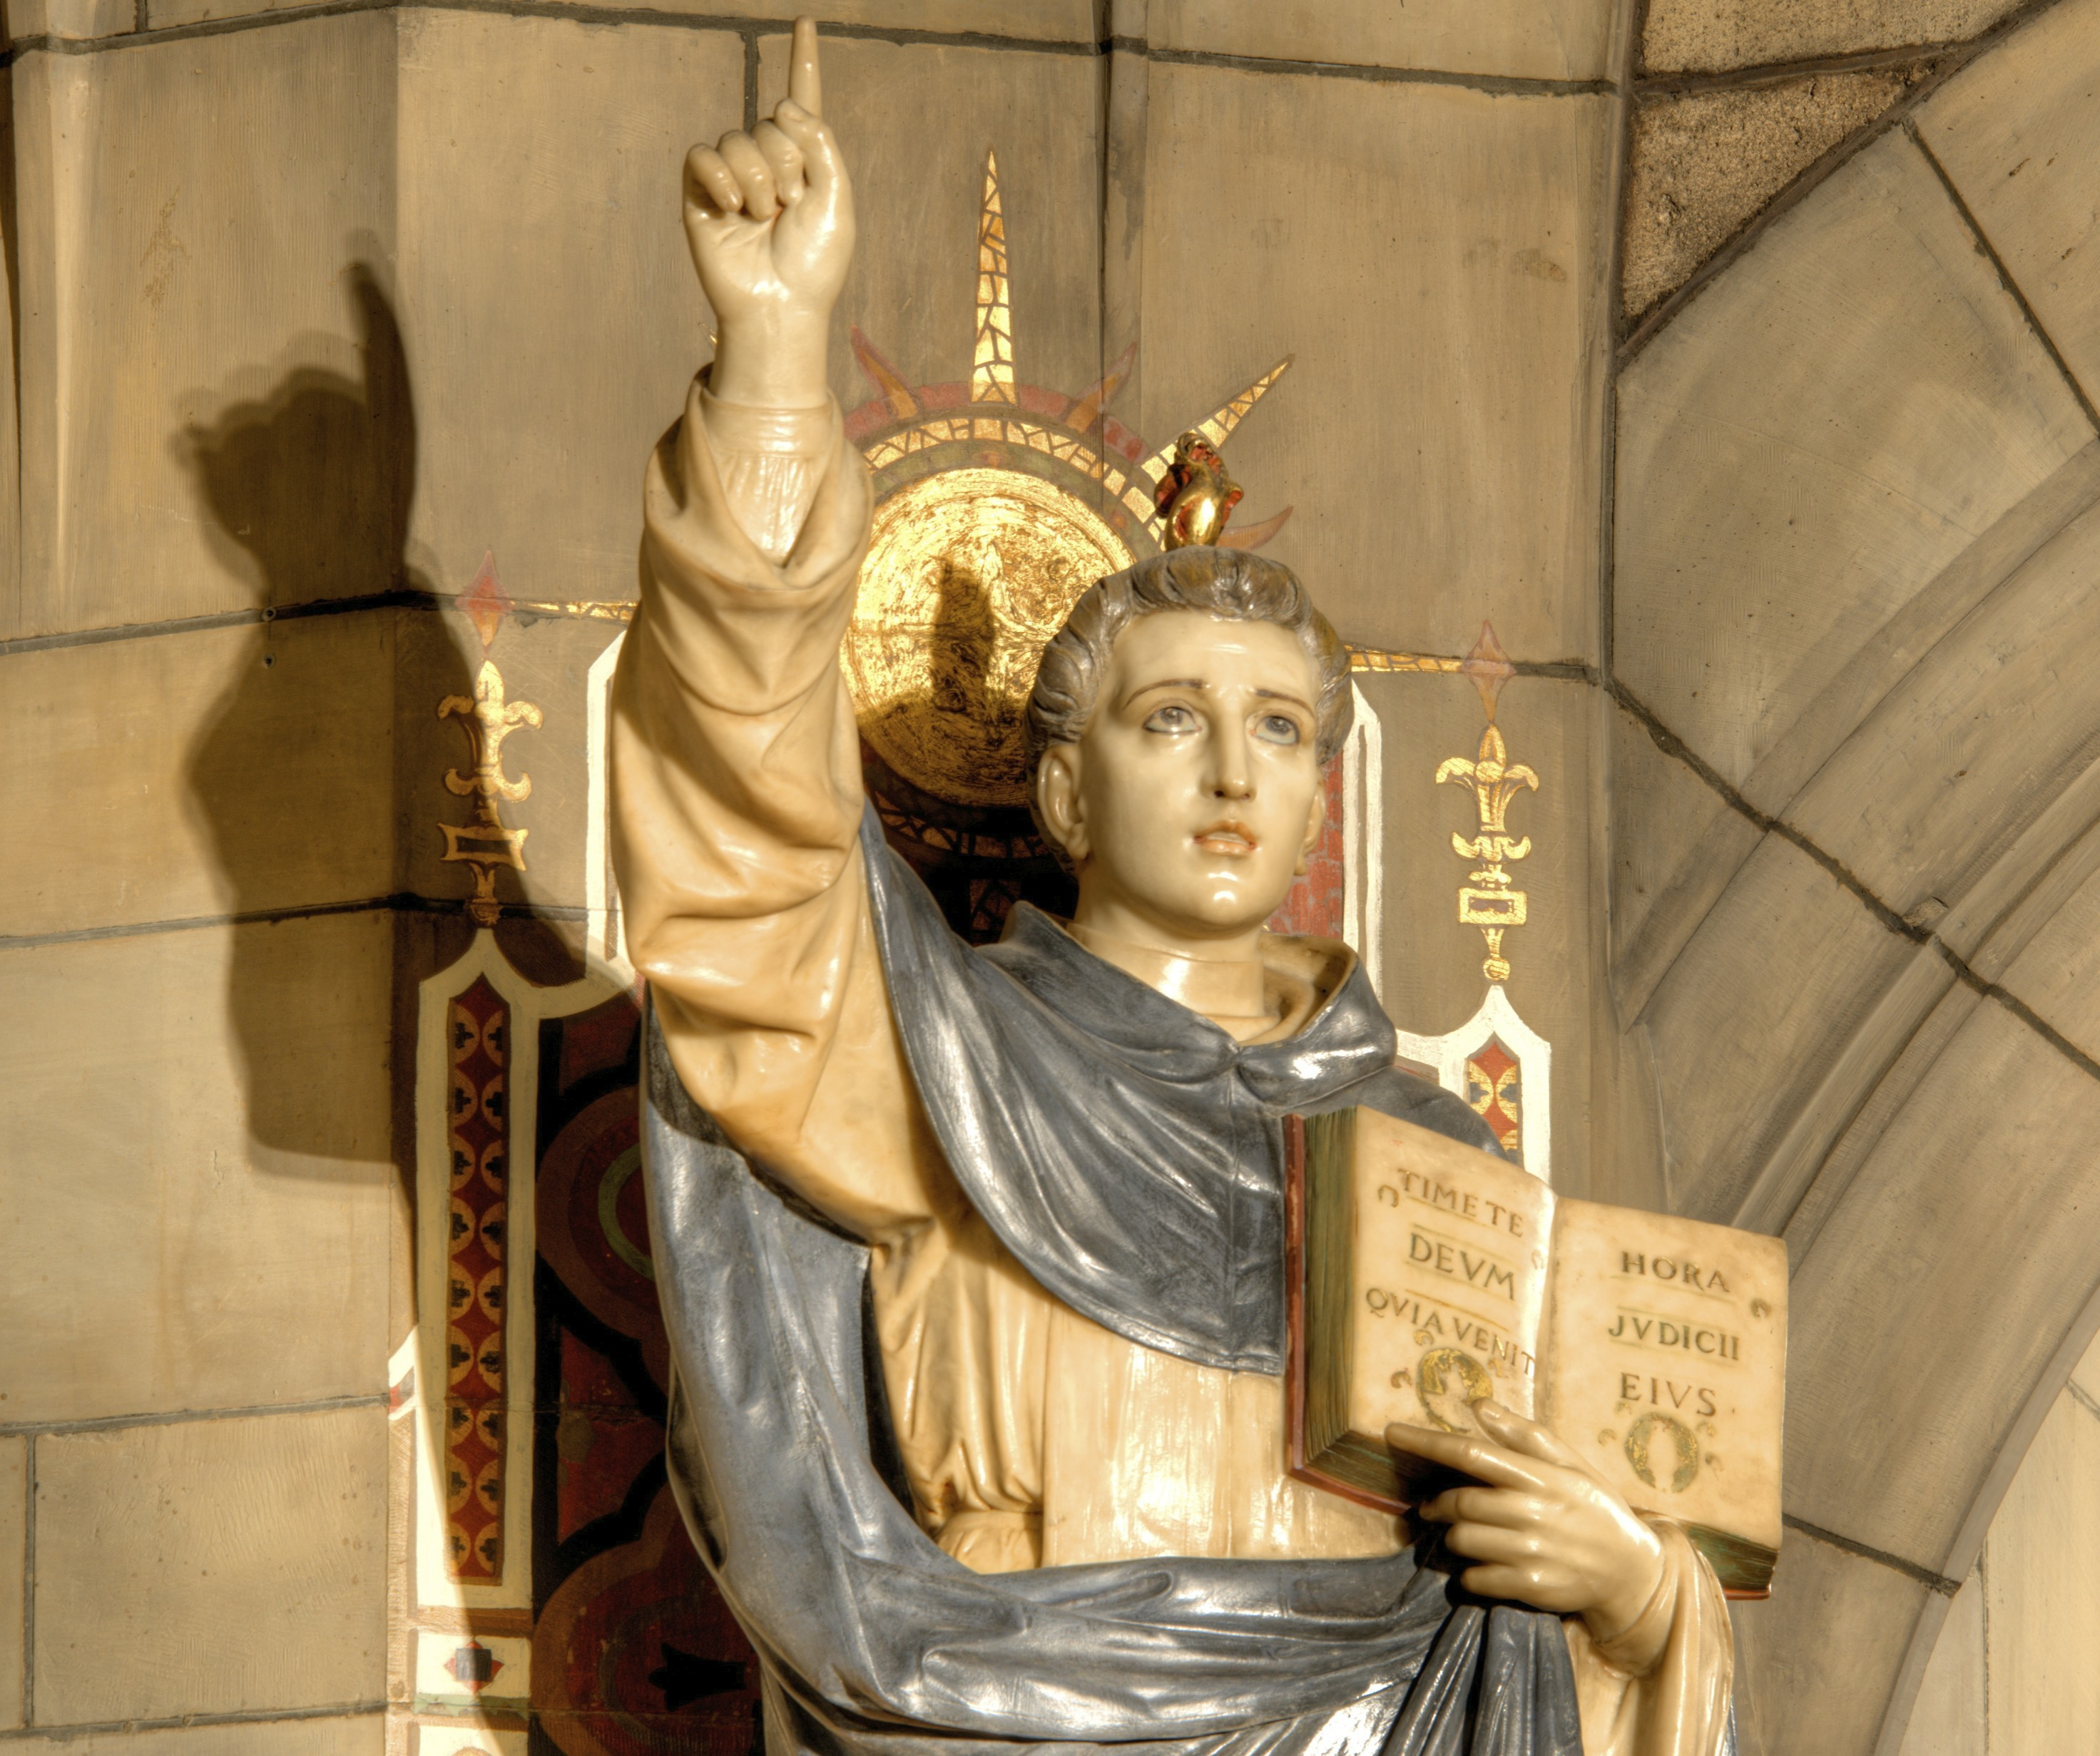 St. Vincent Ferrer preached to the Waldensians to convert them to the faith.